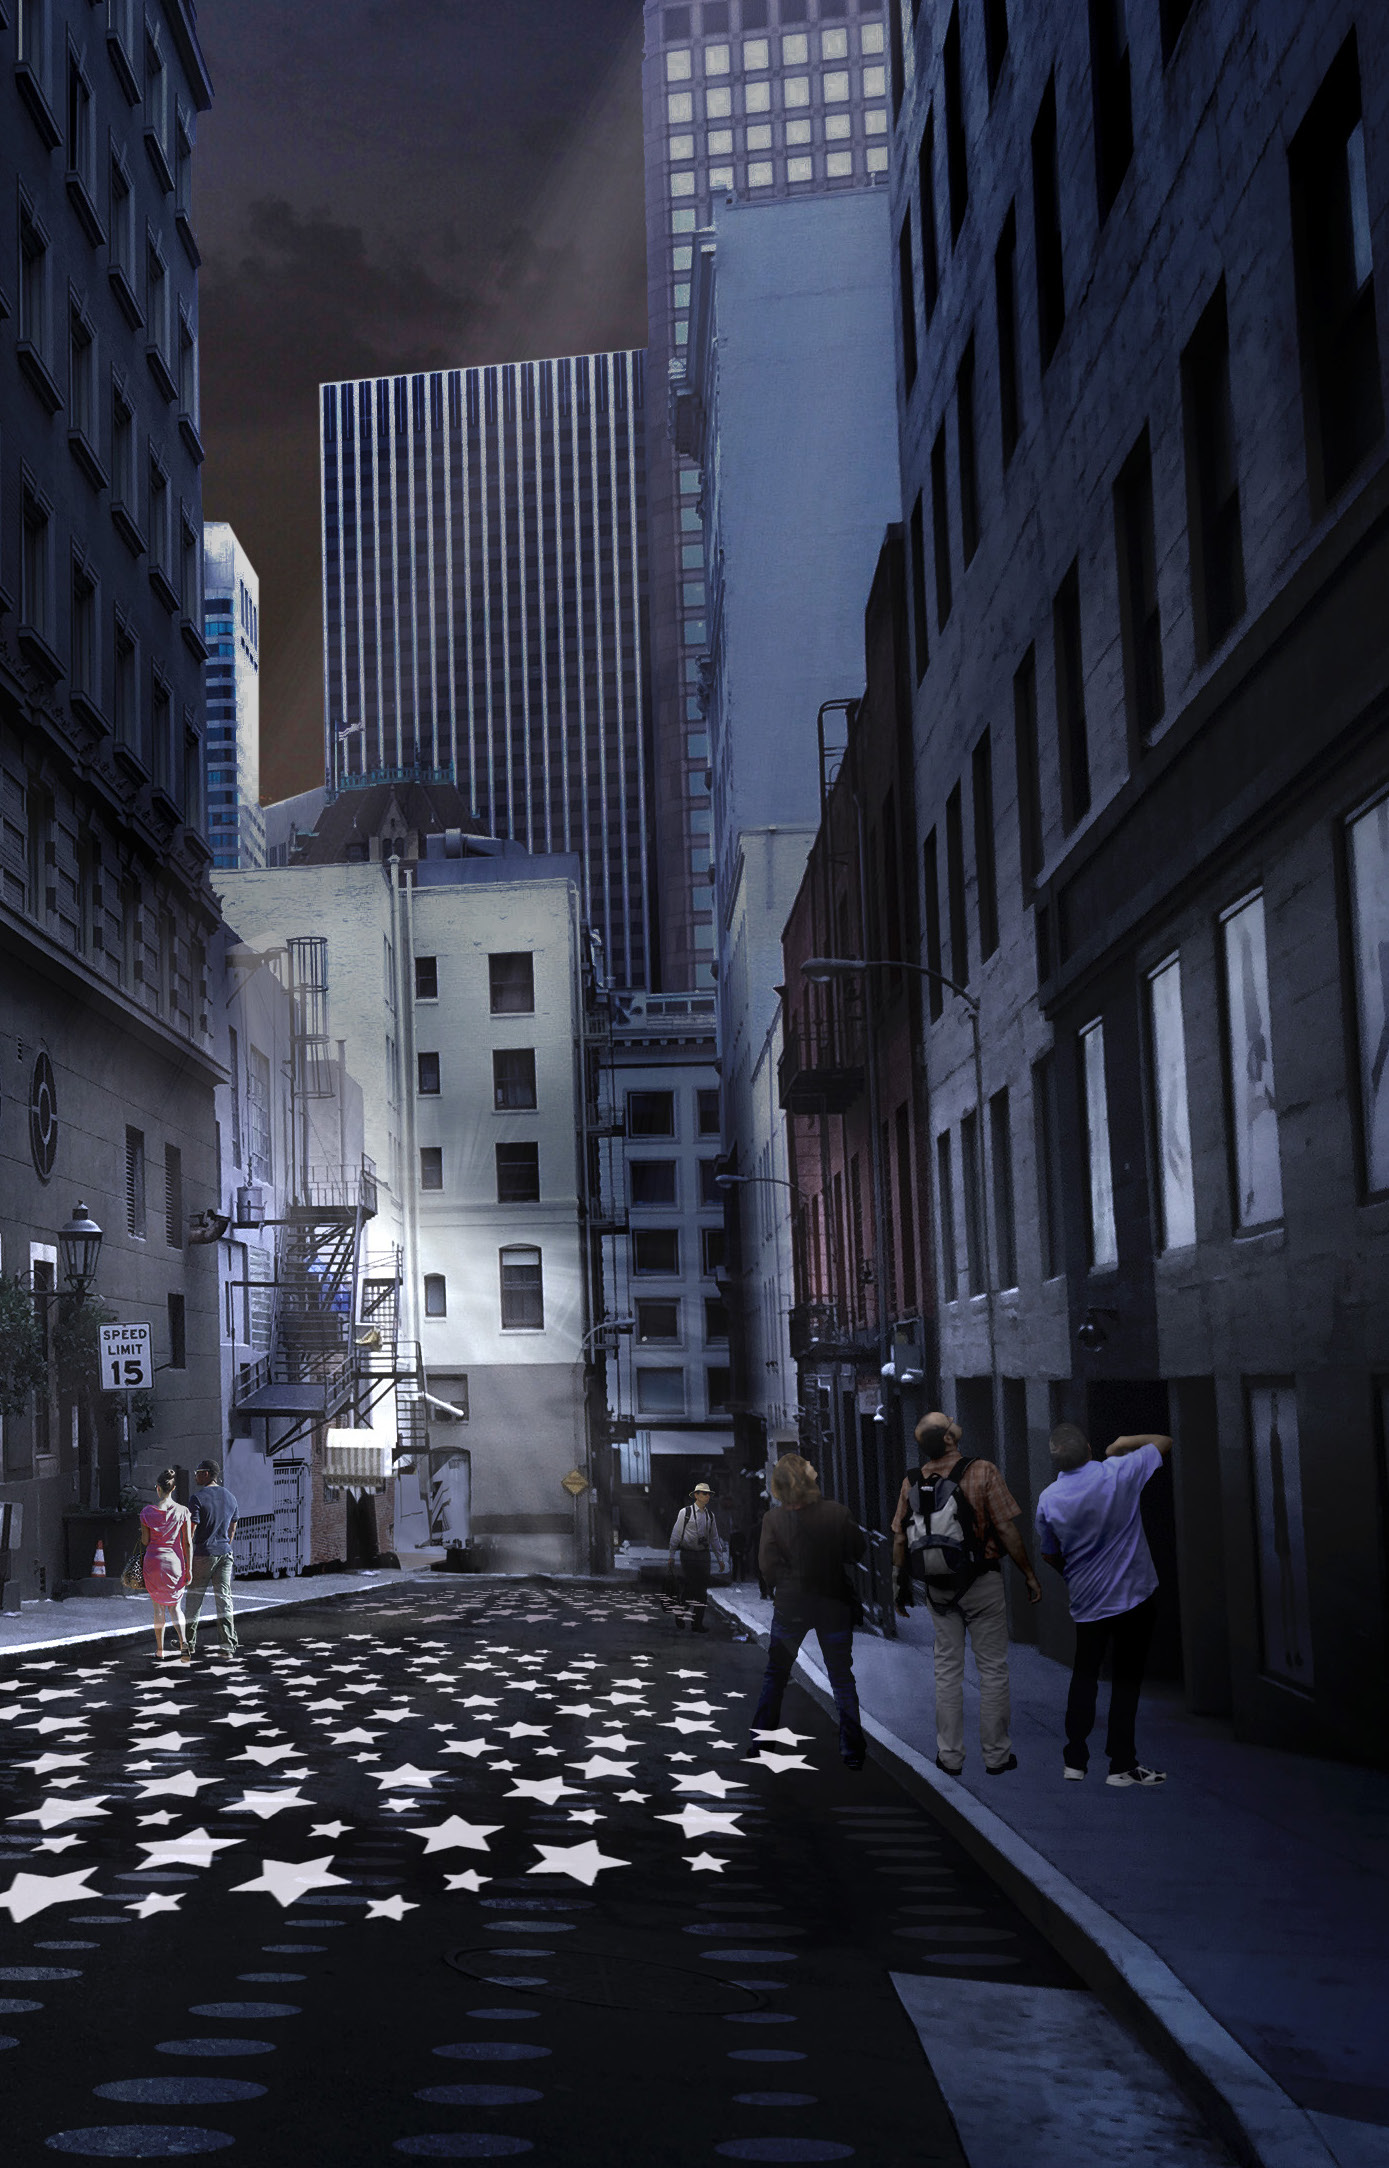 *A light projection show could inspire a healthy nightlife in Union Square.